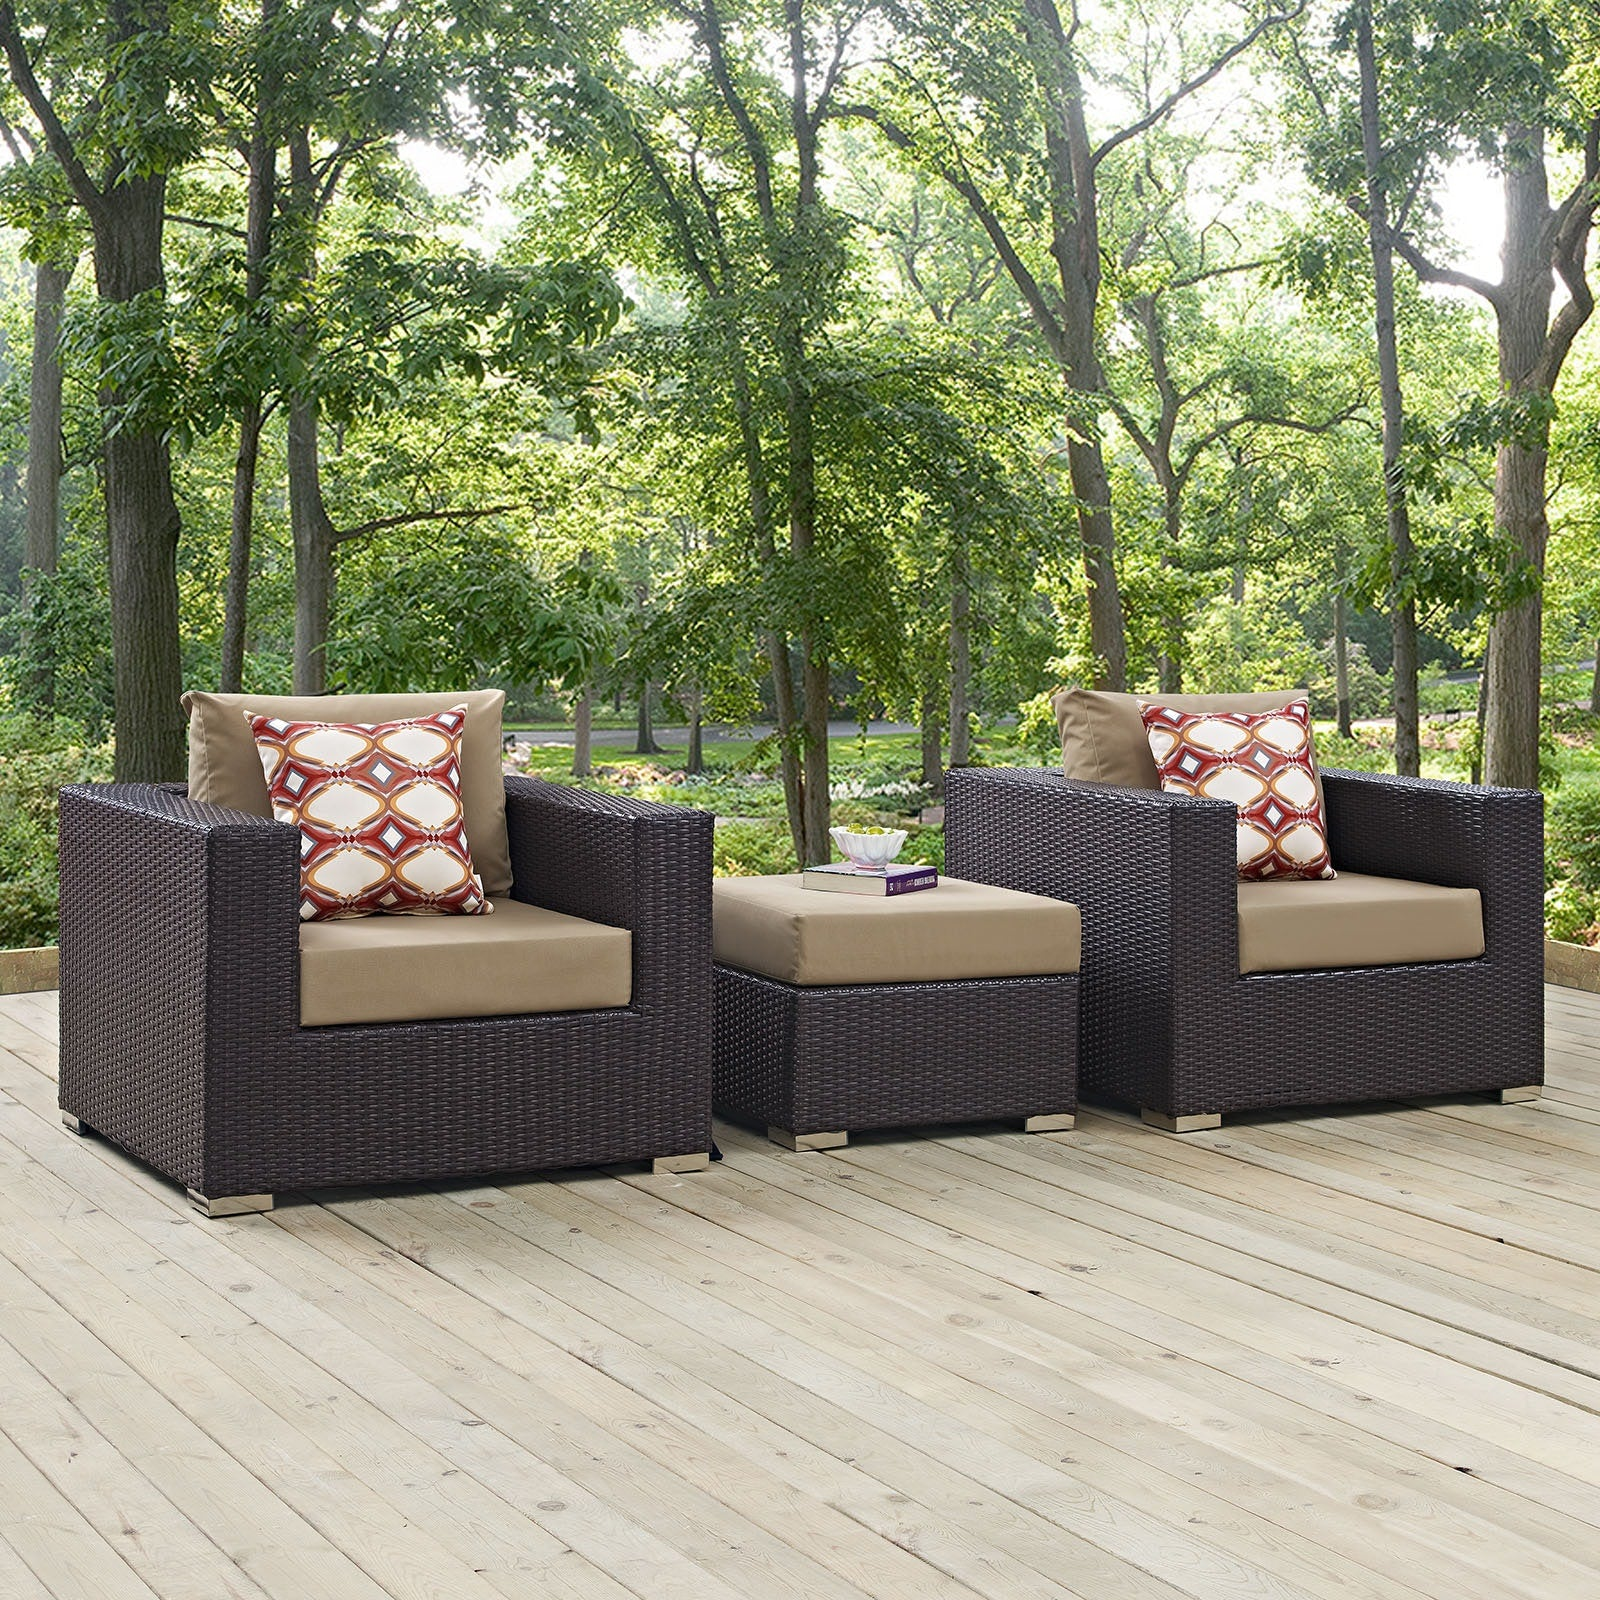 Convene 3 Piece Outdoor Patio Sofa Set - Espresso Mocha